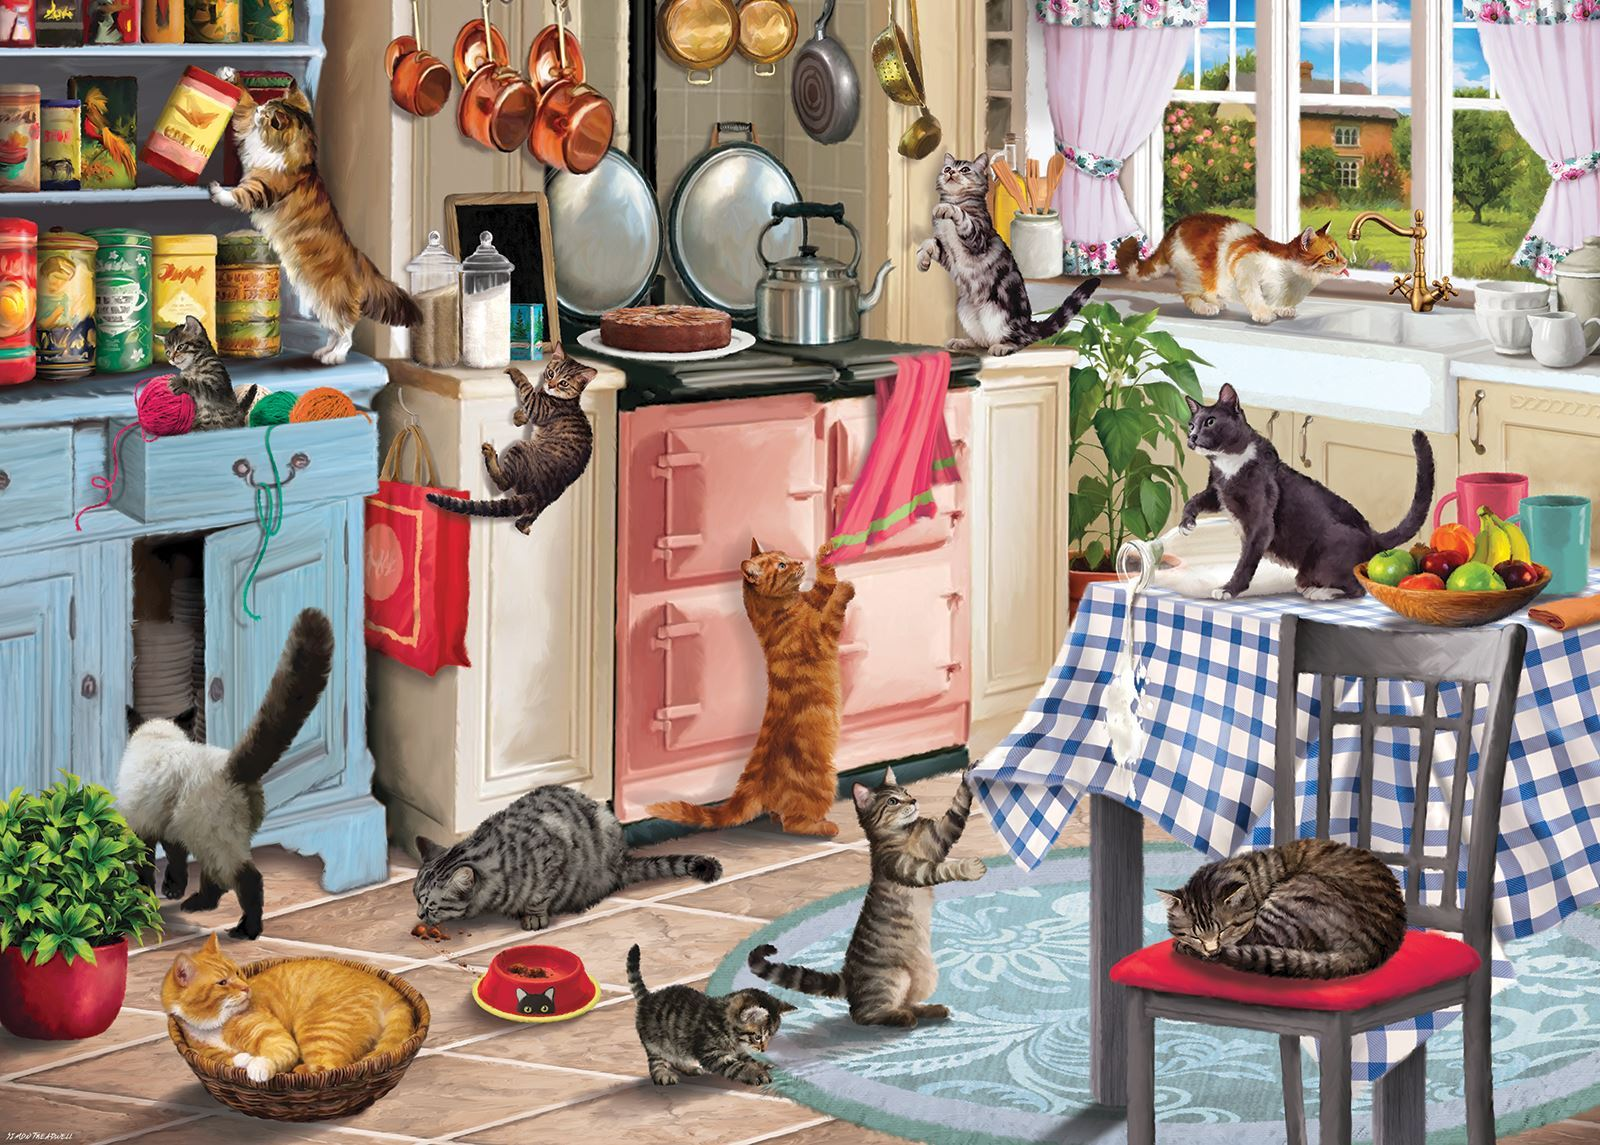 Cats in the Kitchen Jigsaw Puzzle